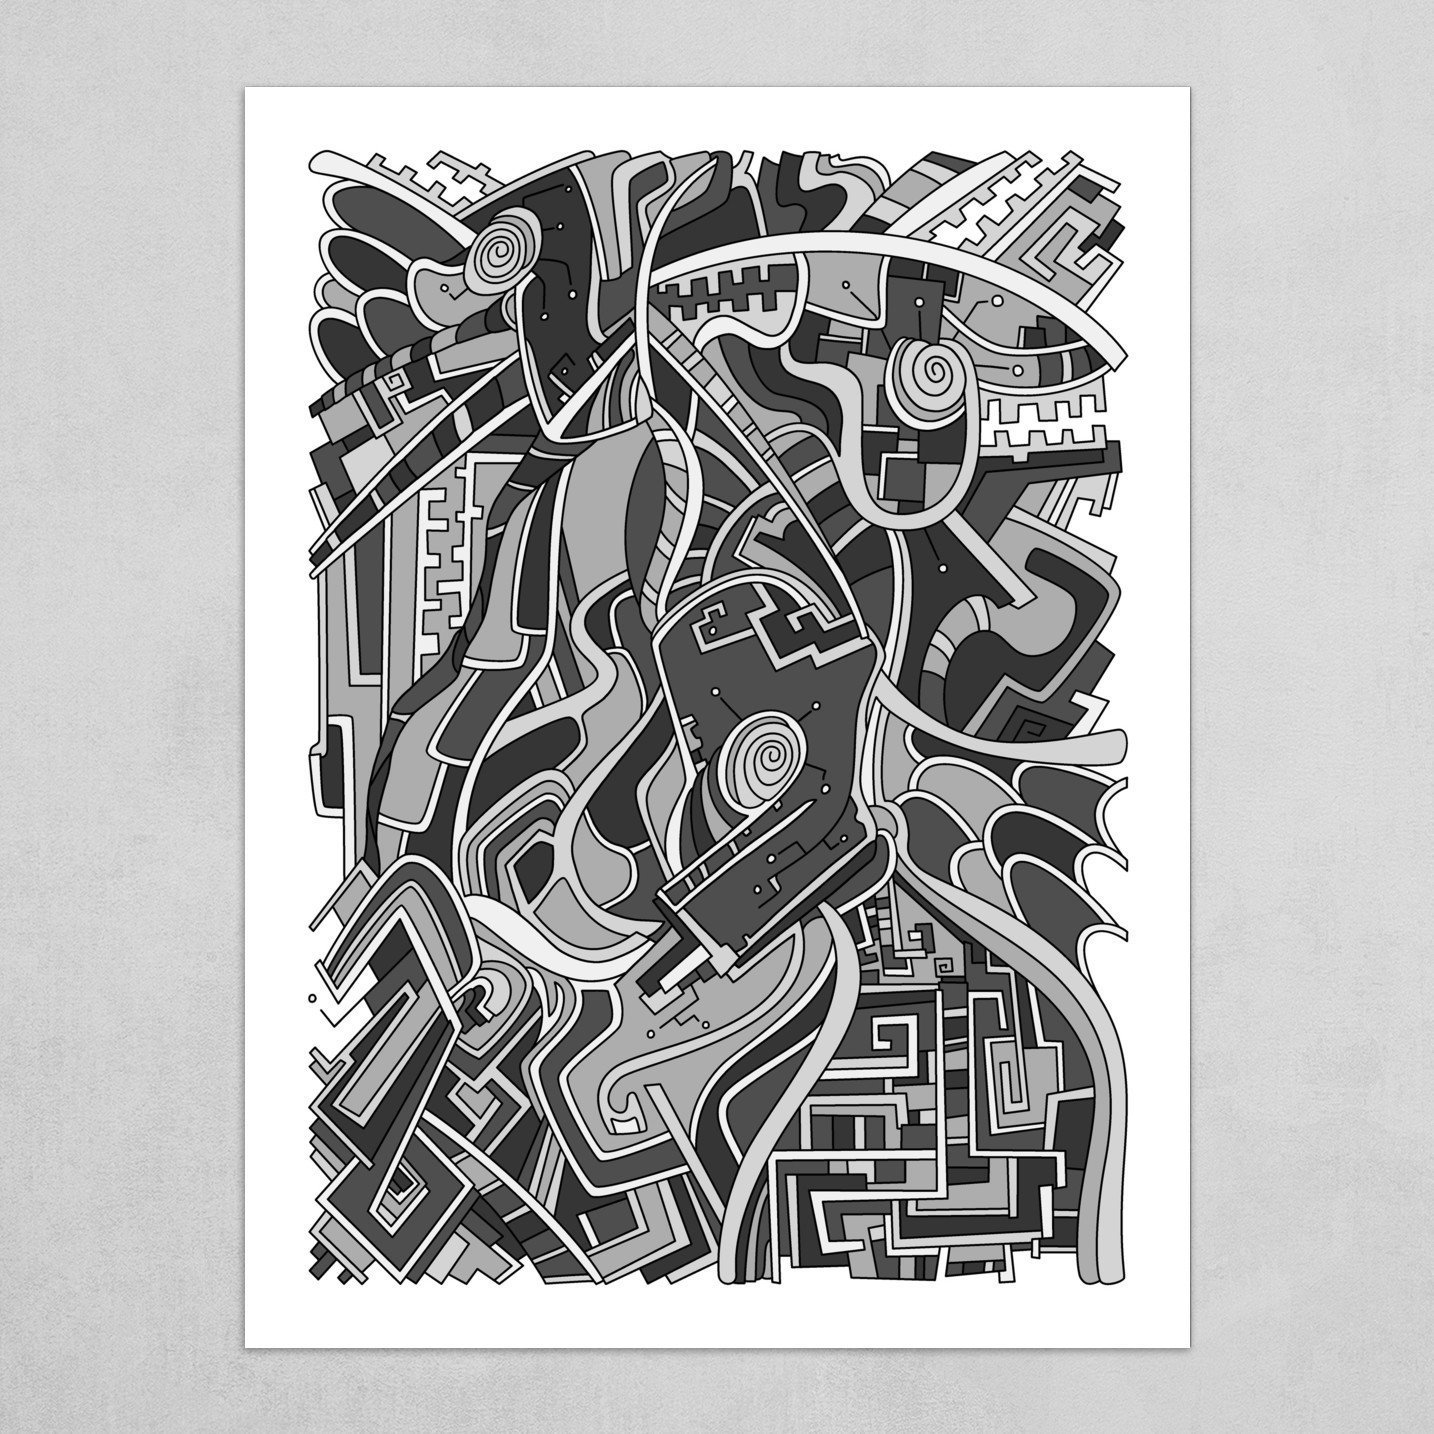 Wandering Abstract Line Art 44: Grayscale